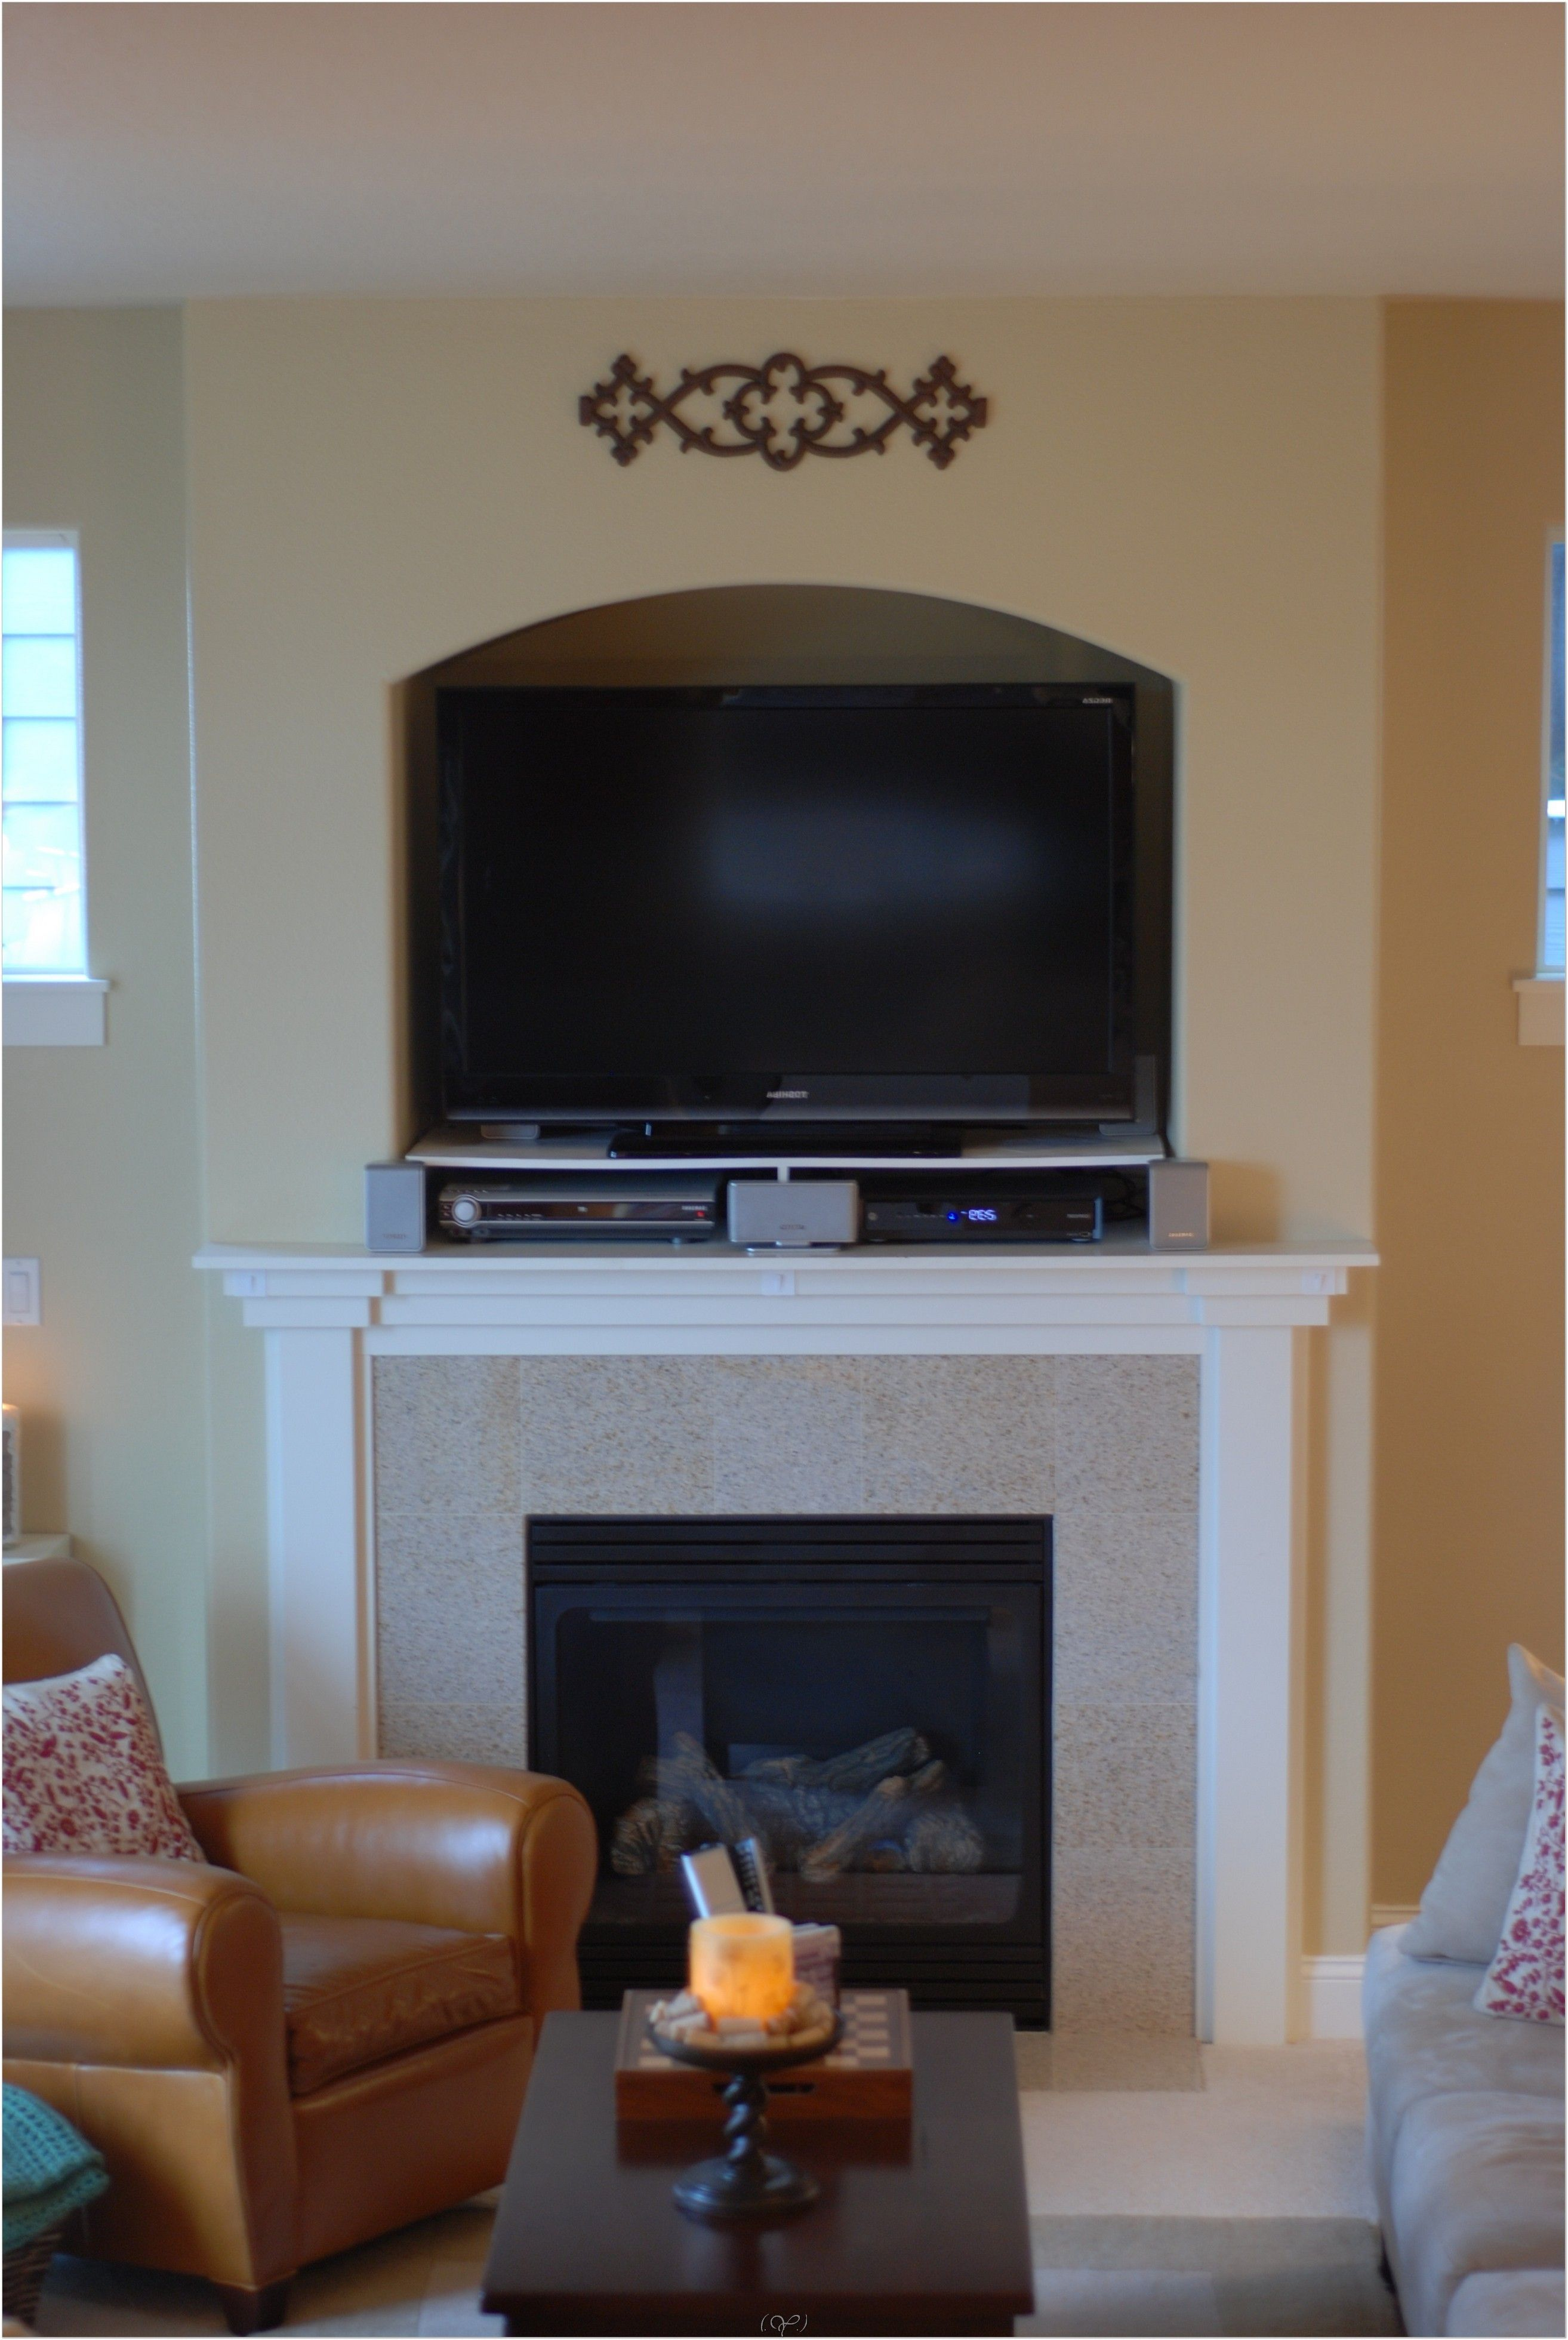 Small Living Room Ideas with Fireplace and TV Want to know more